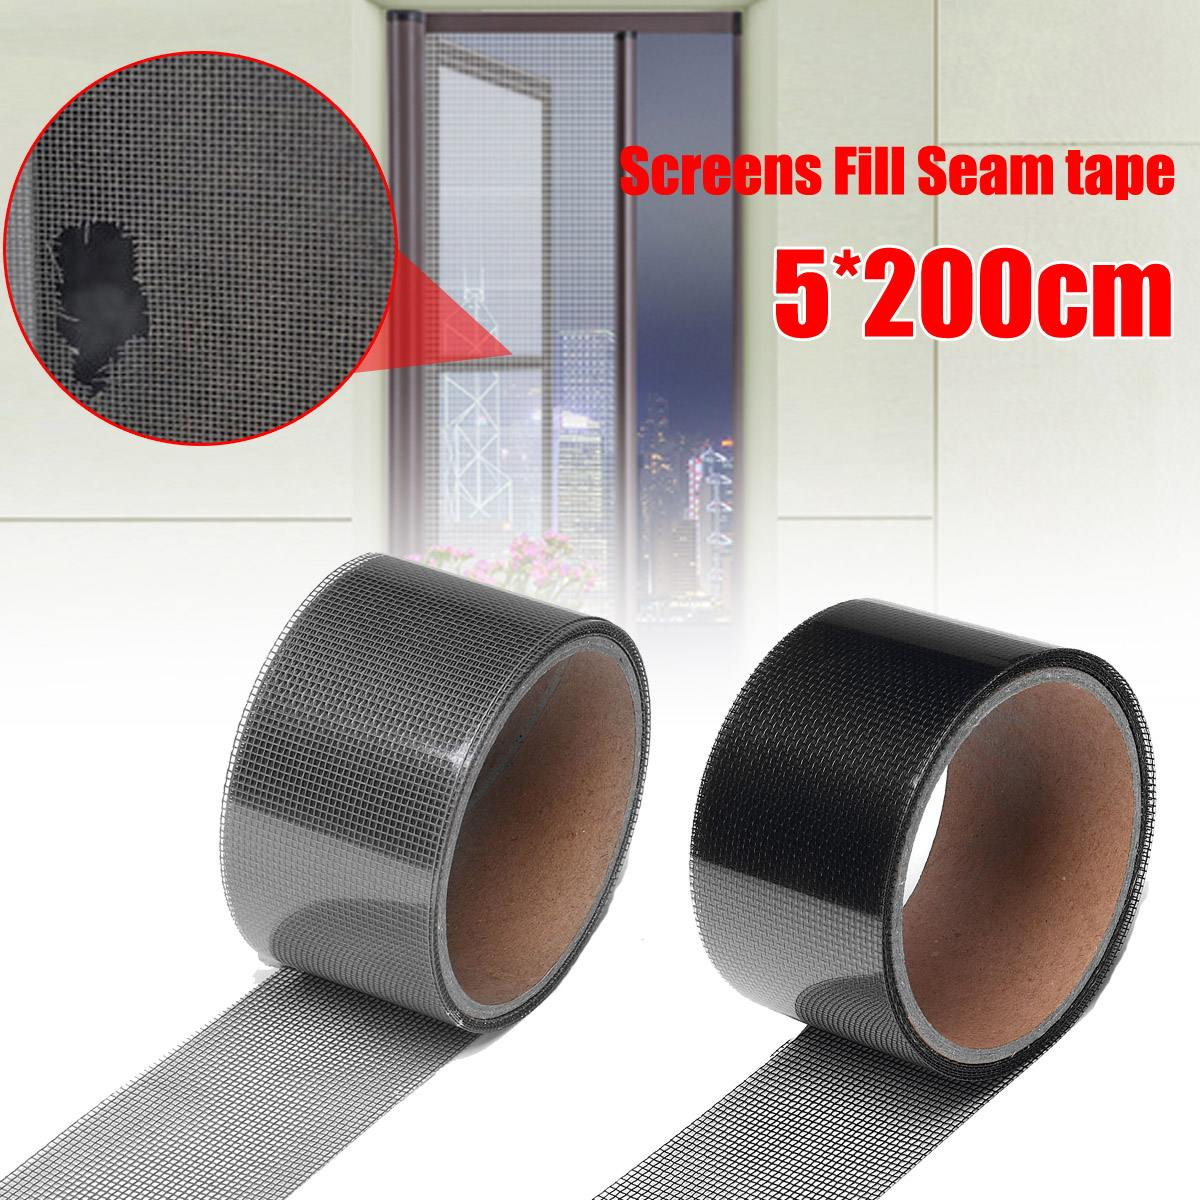 5x200cm Anti-mosquito Mesh Window Door Repair Tape Window Screen Mosquito Netting Repair Broken Holes Strong Adhesive Tape